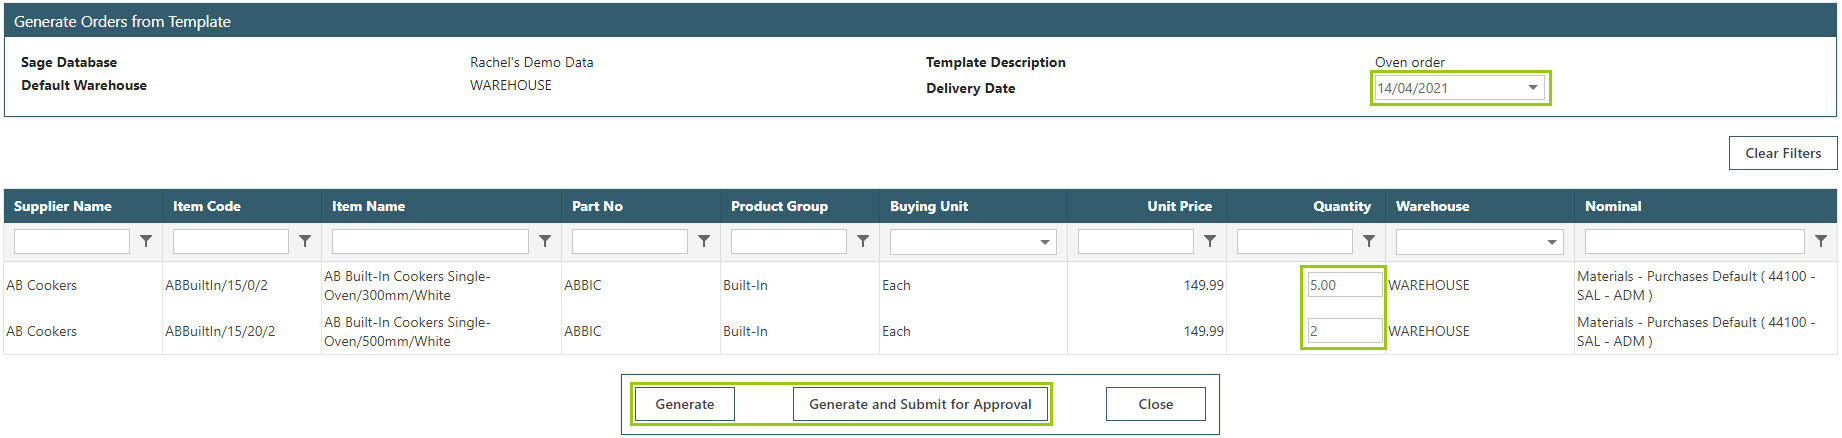 Sicon WAP Purchase Requisitions Help and User Guide - Requisition HUG Section 17.4 Image 2